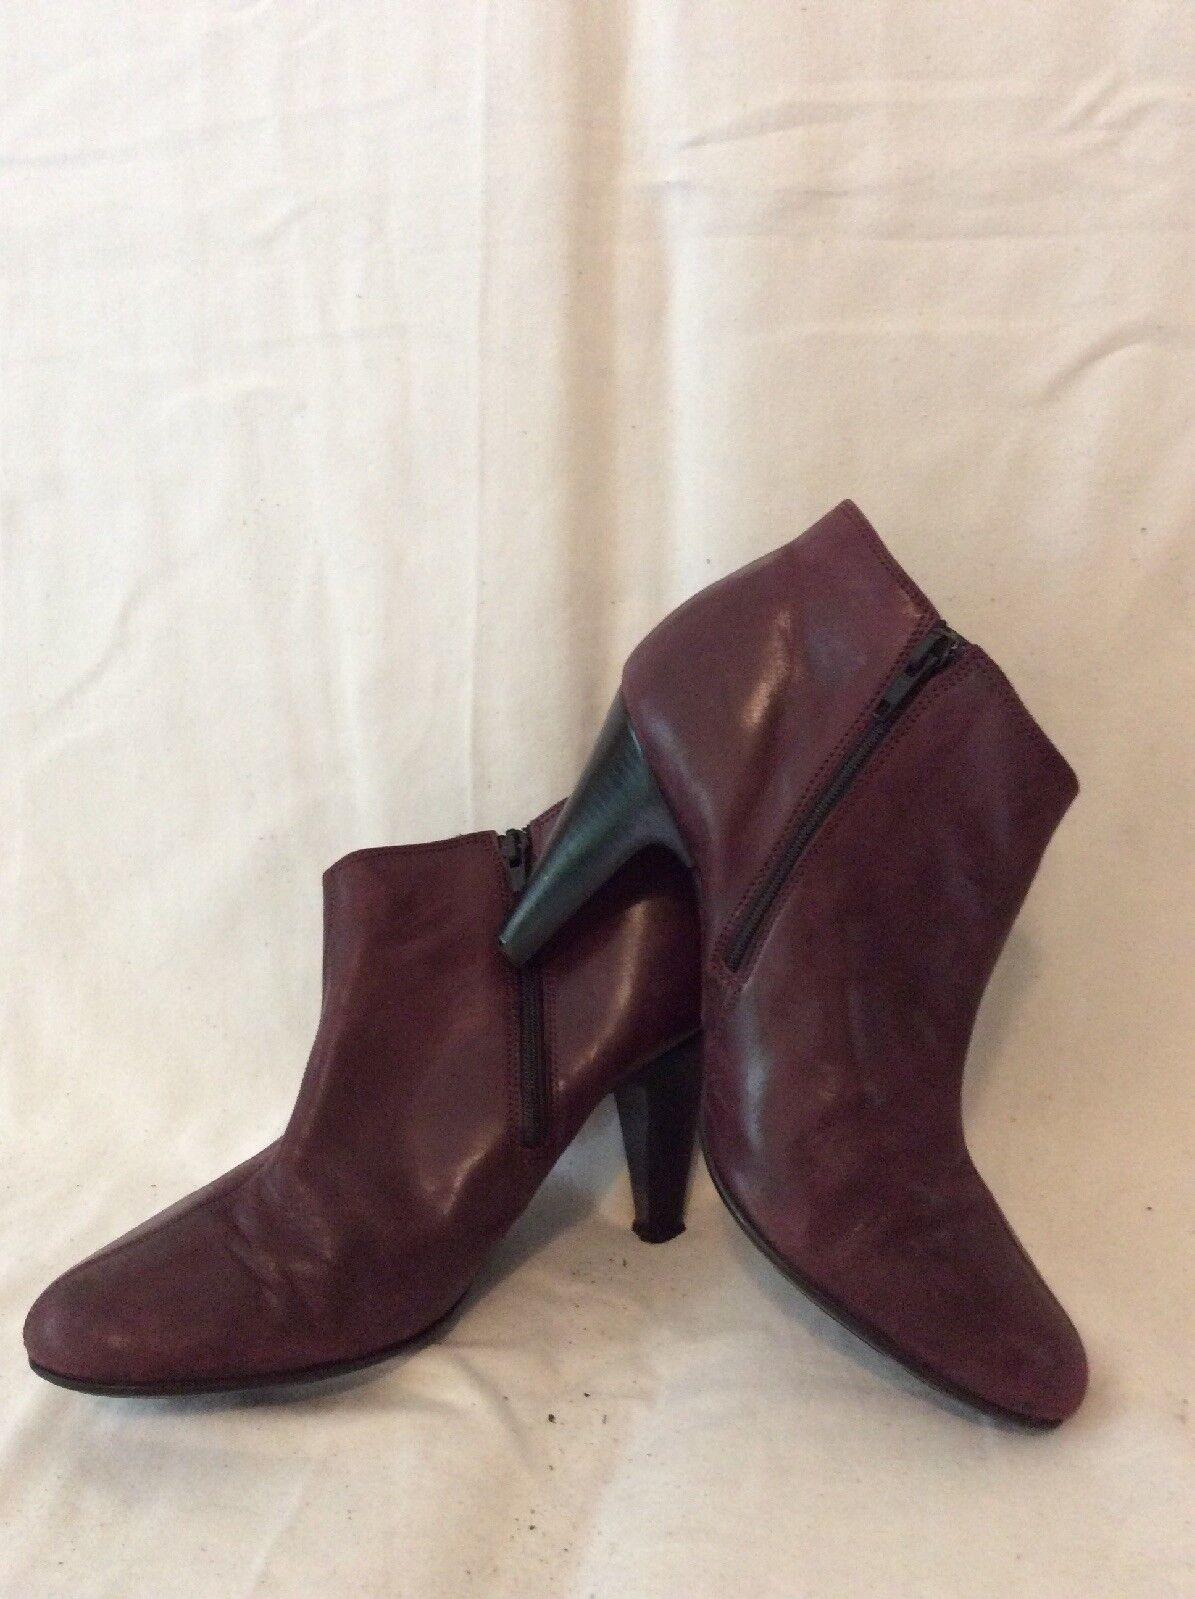 Jones Bootmaker Burgundy Ankle Leather Boots Size 38